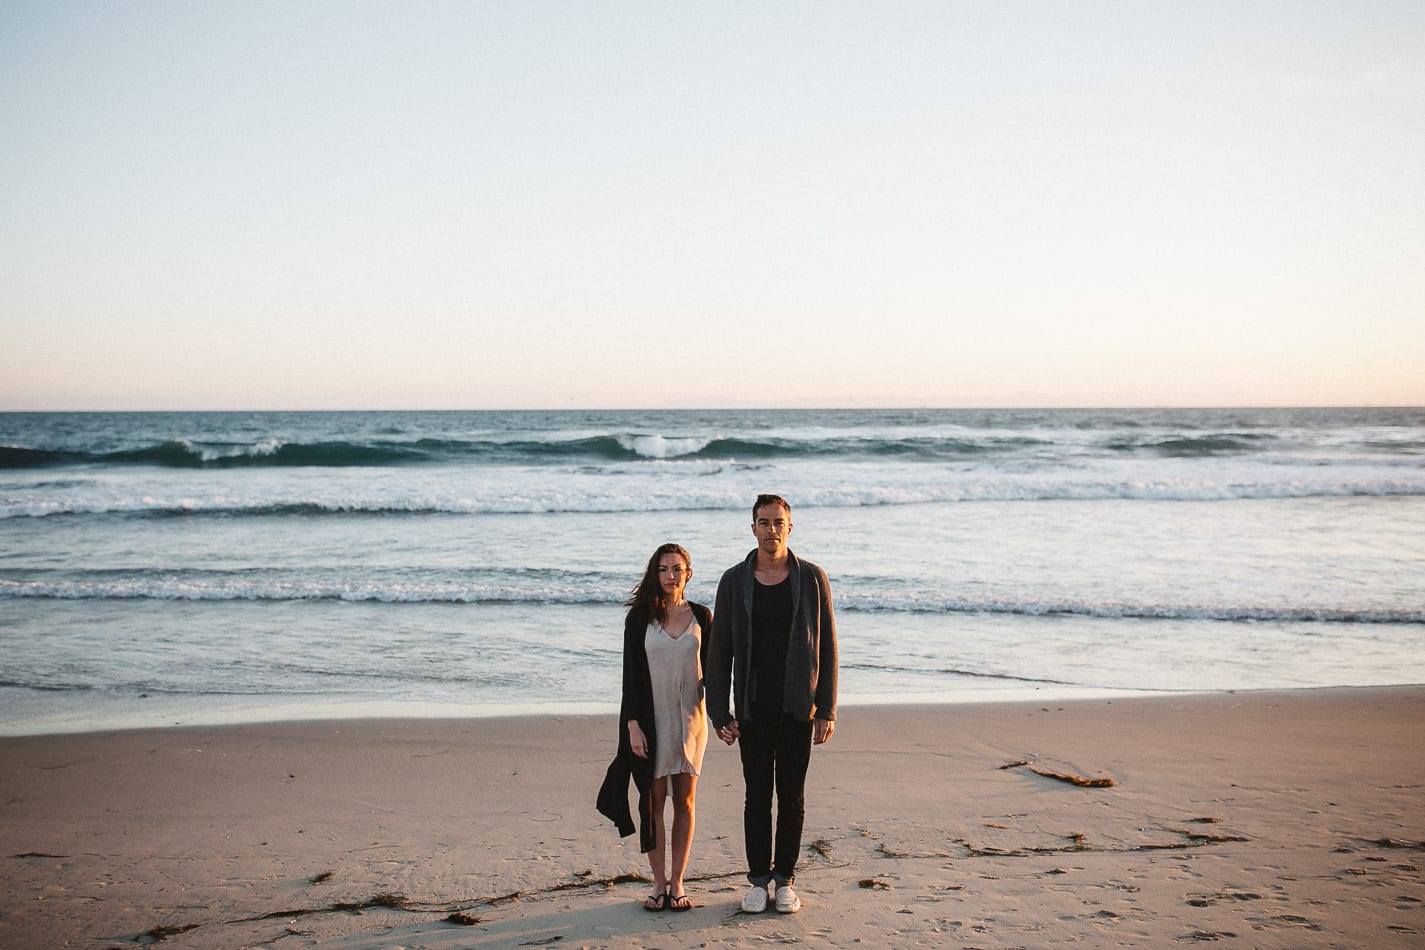 jason-alyssa-huntington-beach-california-engagement-photographer-19